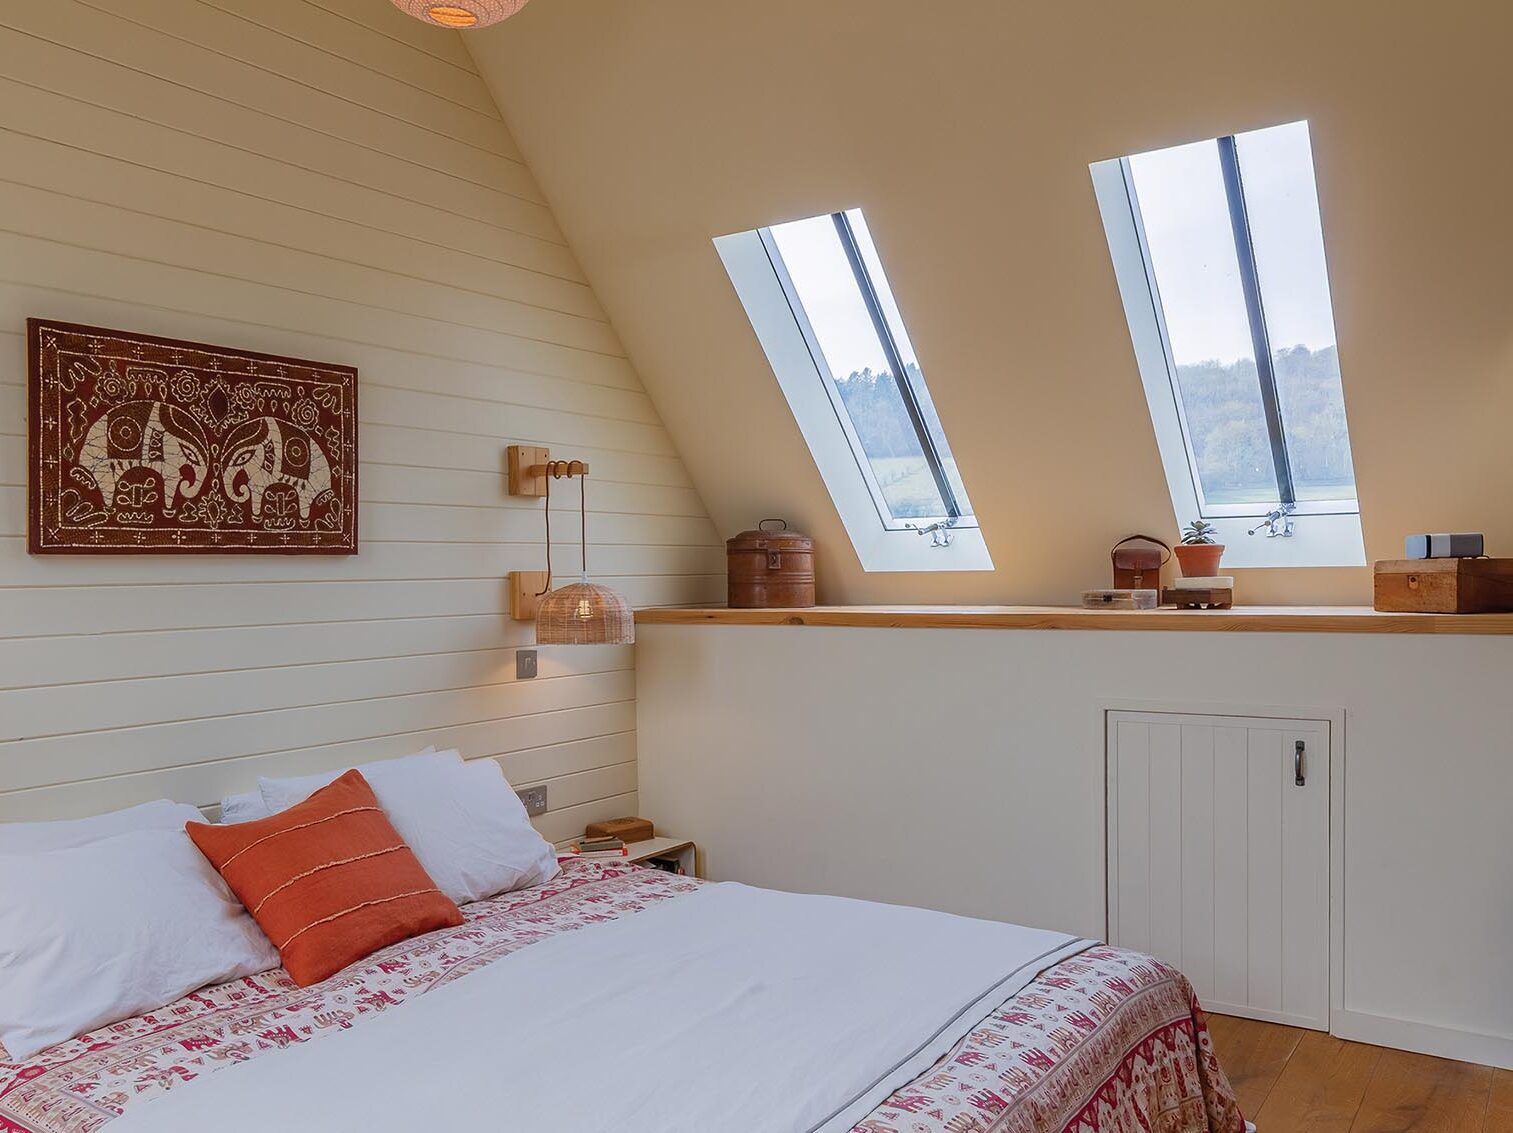 Improving historic properties with The Rooflight Company